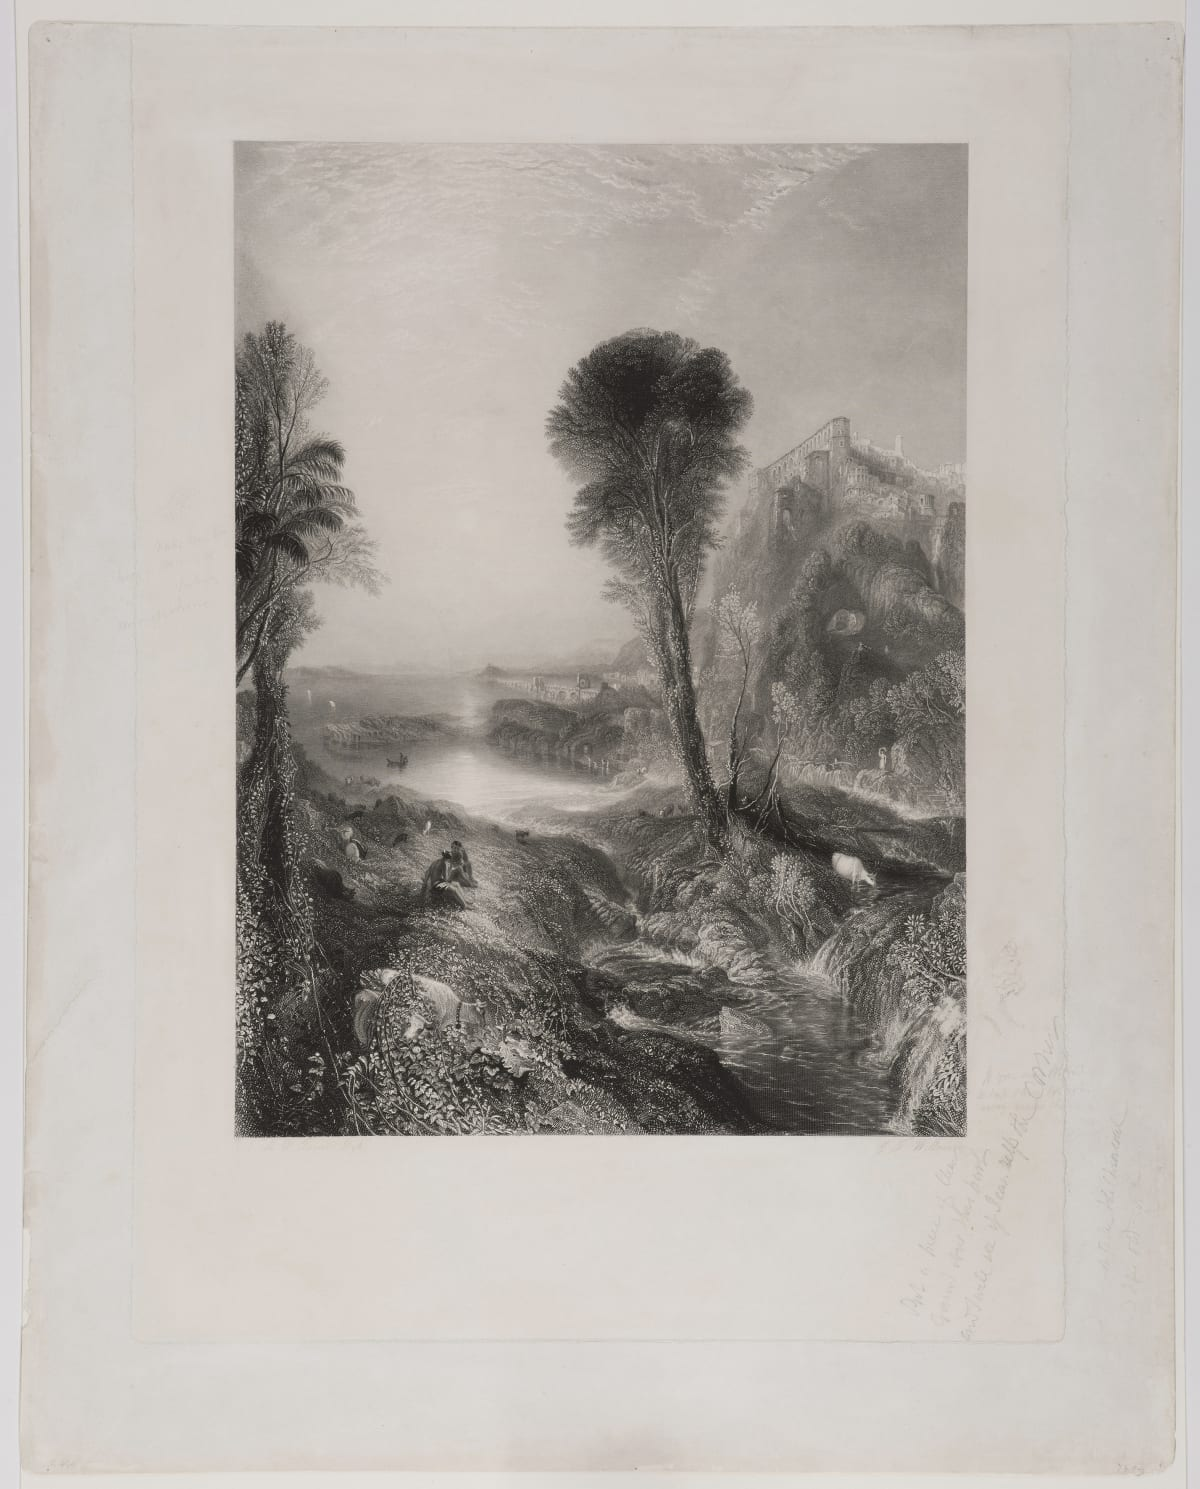 J.M.W. Turner Mercury and Argo, 1841 Engraving with hand-touching in pencil by Turner Image Size: 52.2 x 38.5 cm / Plate Size: 68.8 x 48.6 cm / Sheet Size: 75.4 x 60.2 cm